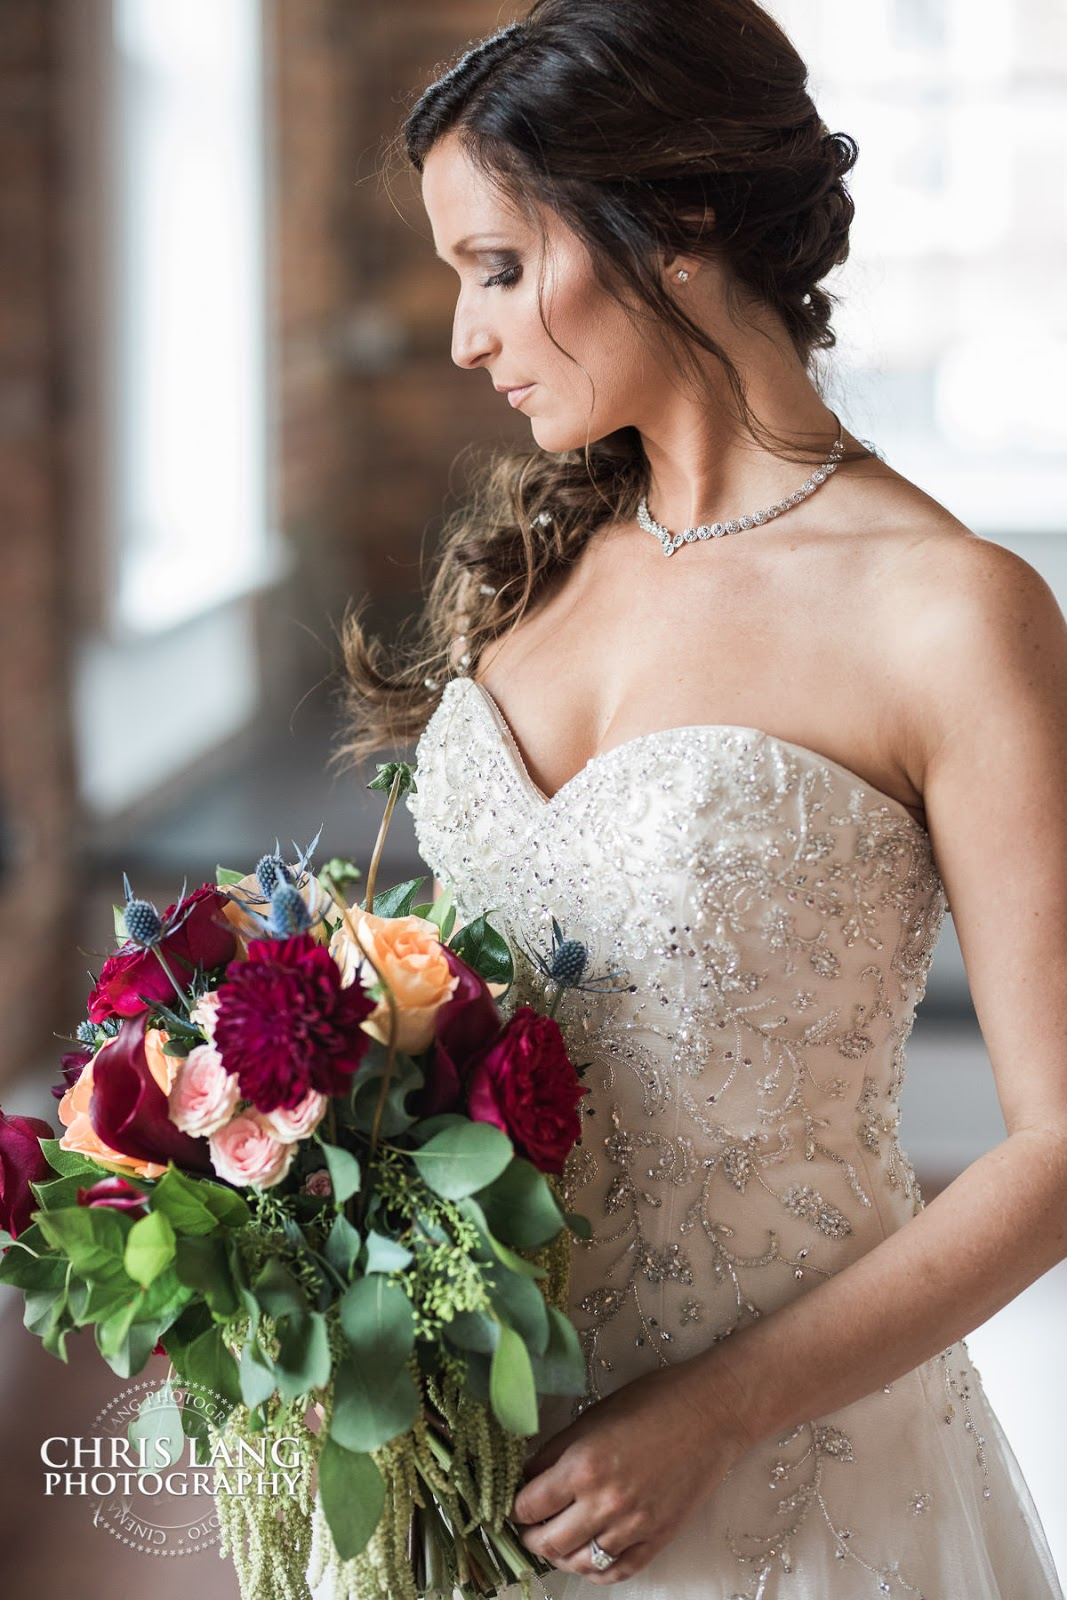 bridal bouquet - bridal ideas - wedding dress - bride - wilmington nc wedding photography -  lifestyle wedding photography